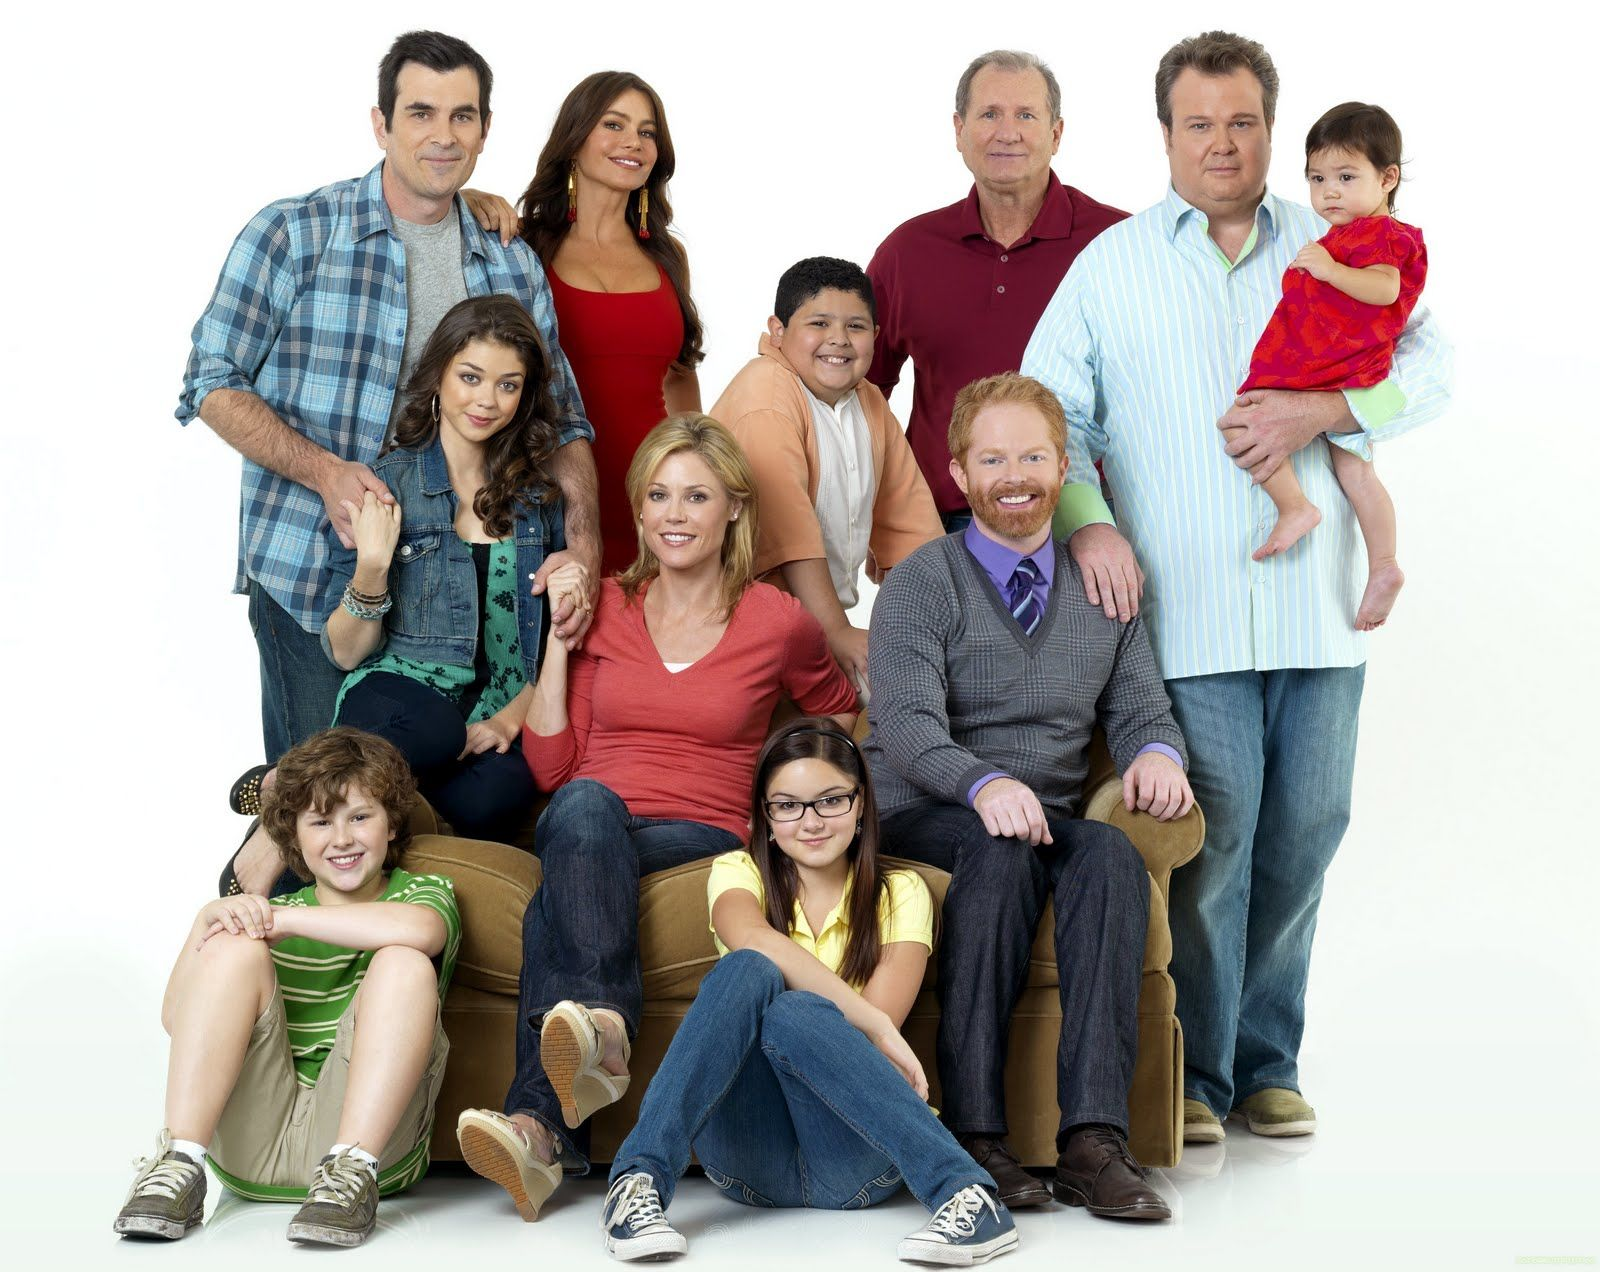 the modern family Modern family is an american television sitcom, created by christopher lloyd and steven levitan, that debuted on abc on september 23, 2009 presented in mockumentary style, the fictional characters frequently talk directly into the camera.